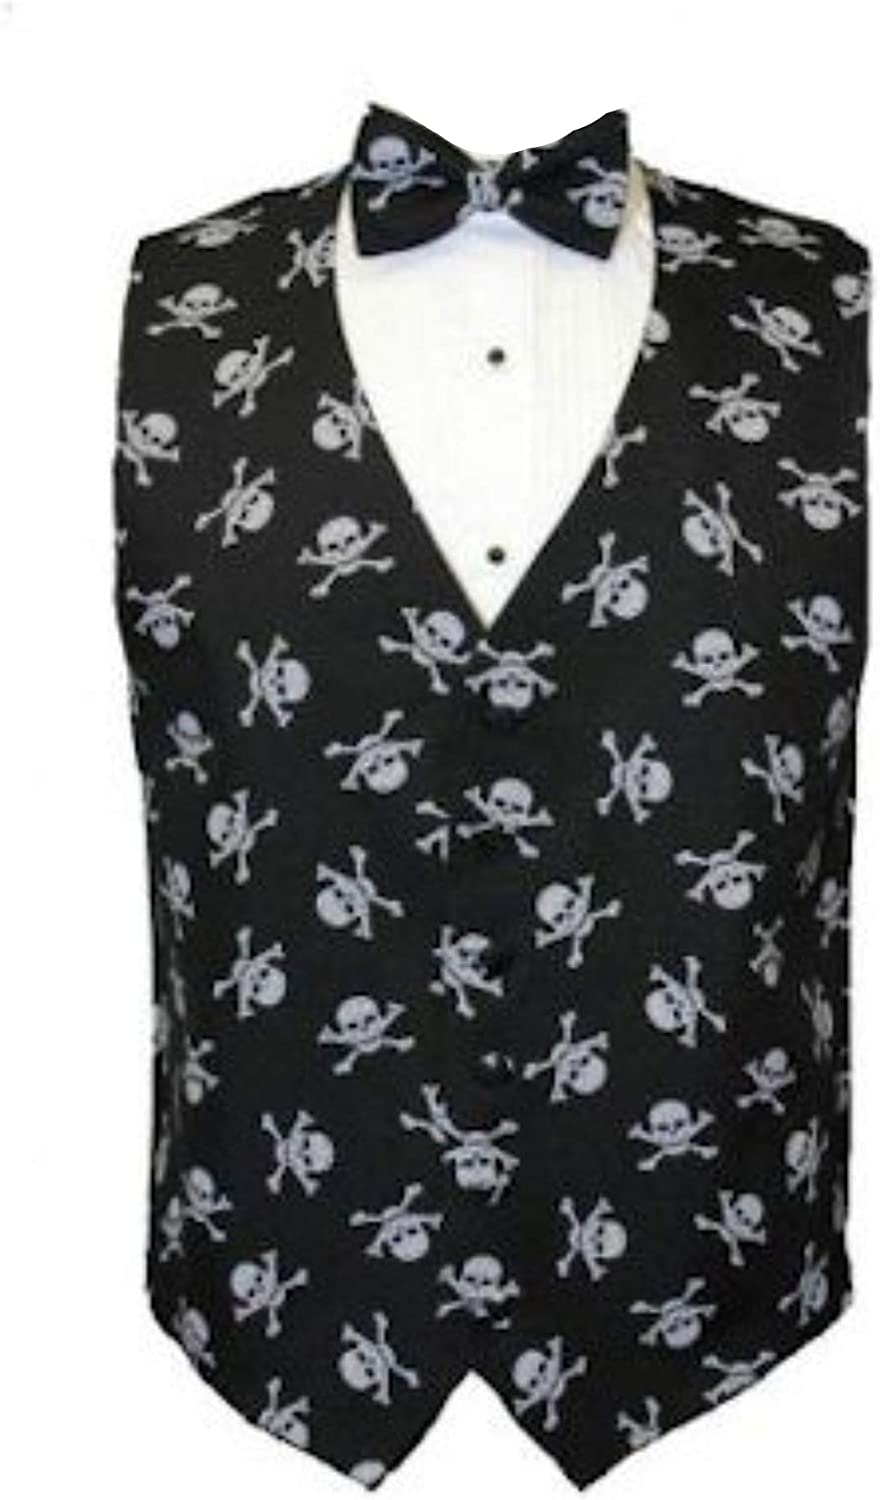 Musical Instruments Tuxedo Vest and Bow Tie